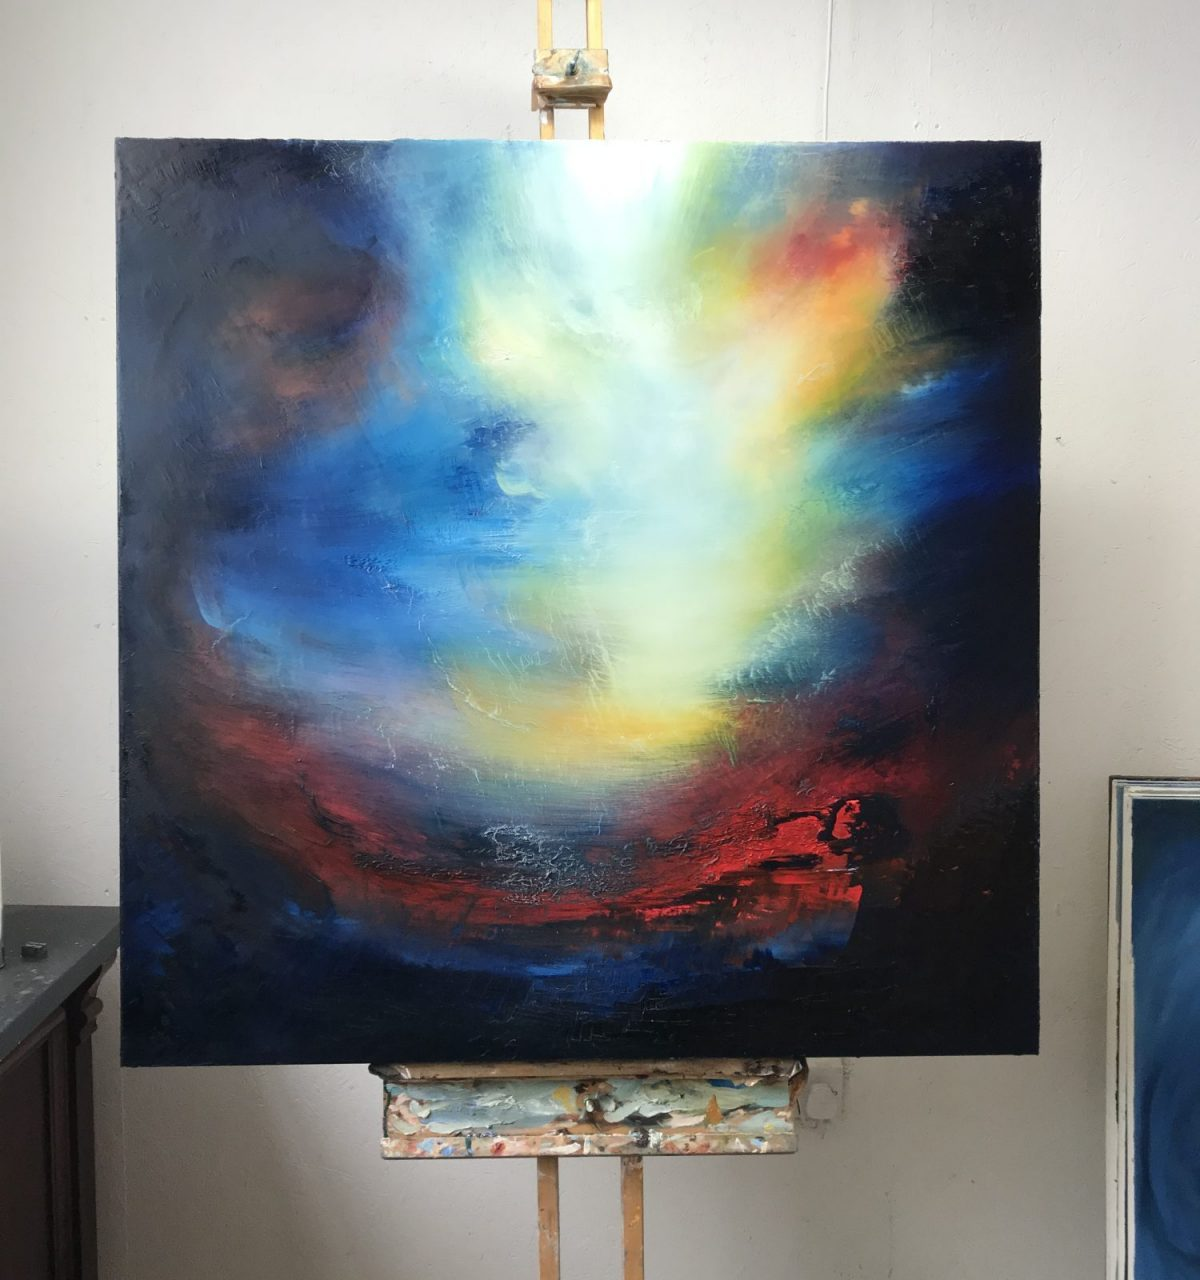 Dionysia oil painting in the Aether Worlds series